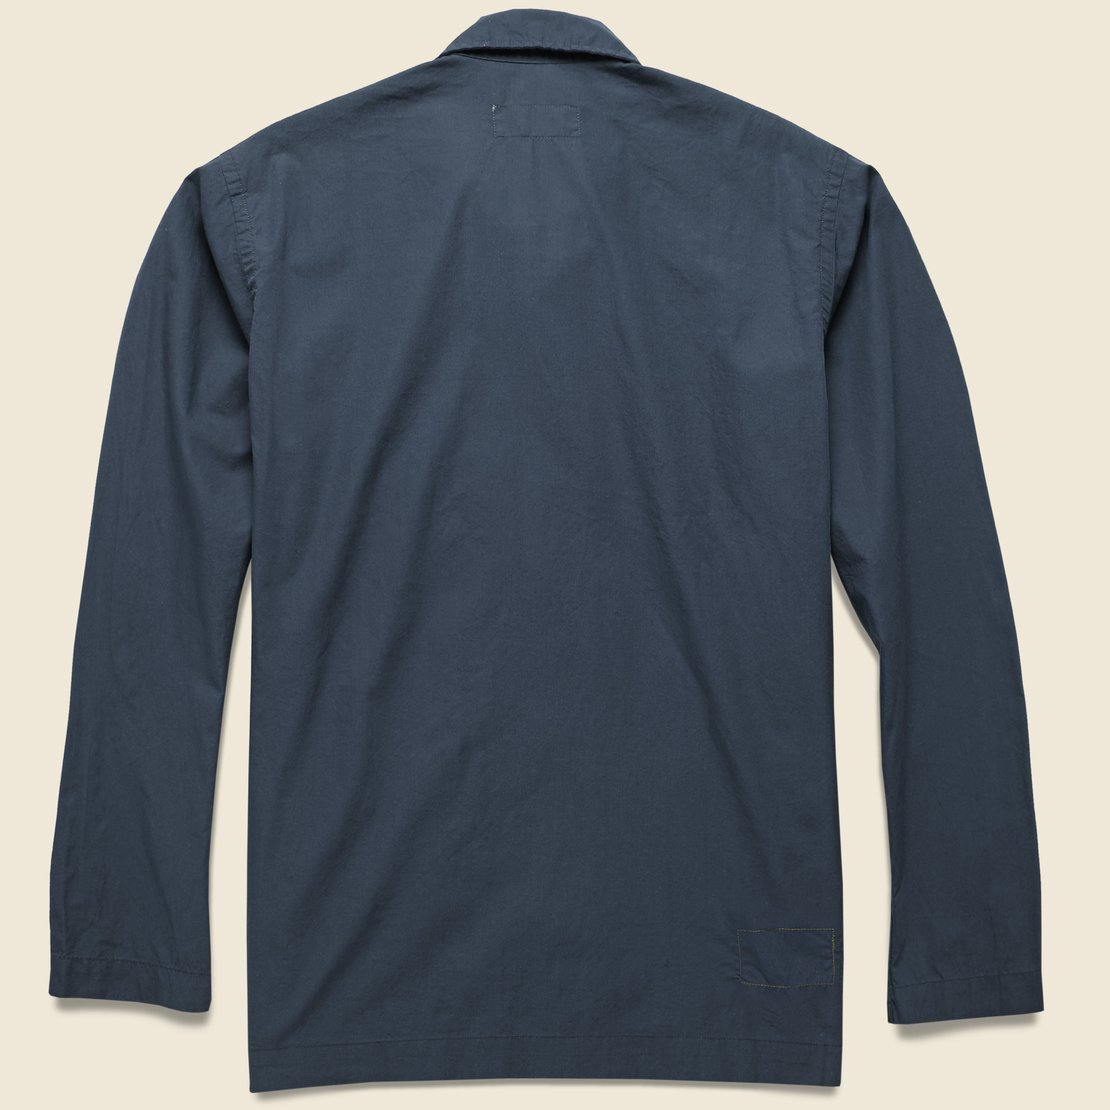 Bakers Overshirt - Blueprint